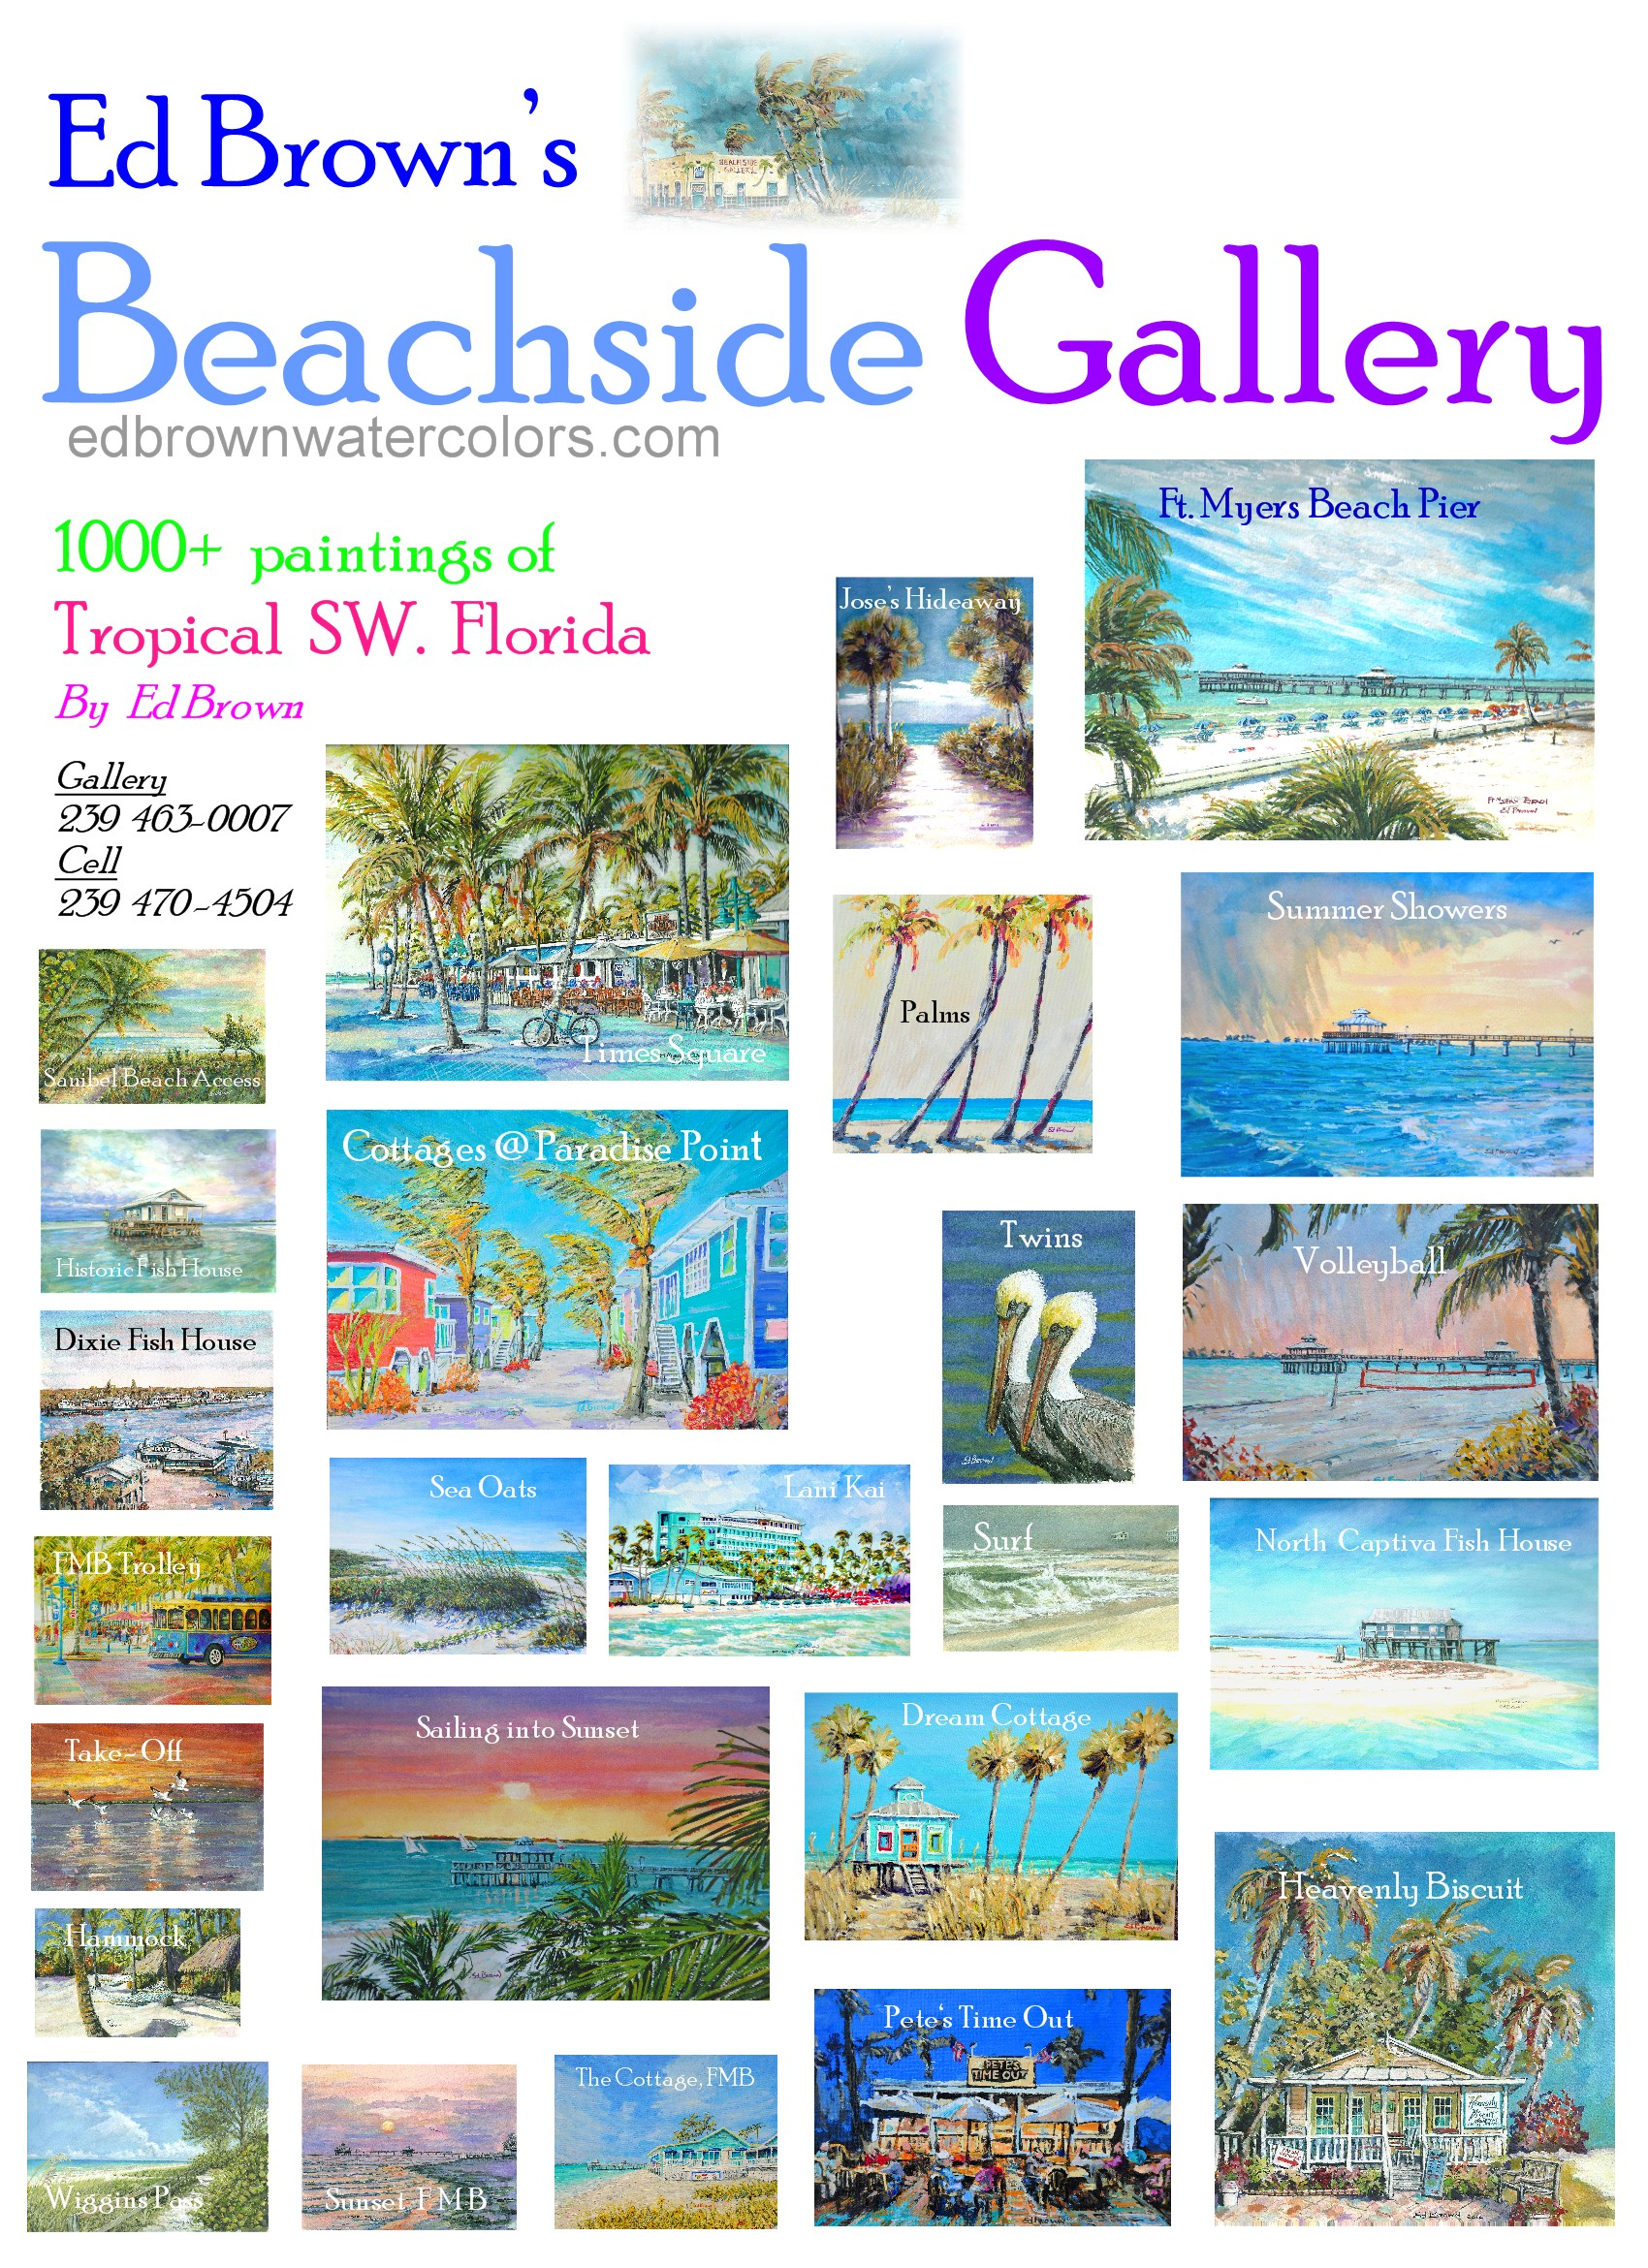 Beachside Gallery in Ft Myers Beach